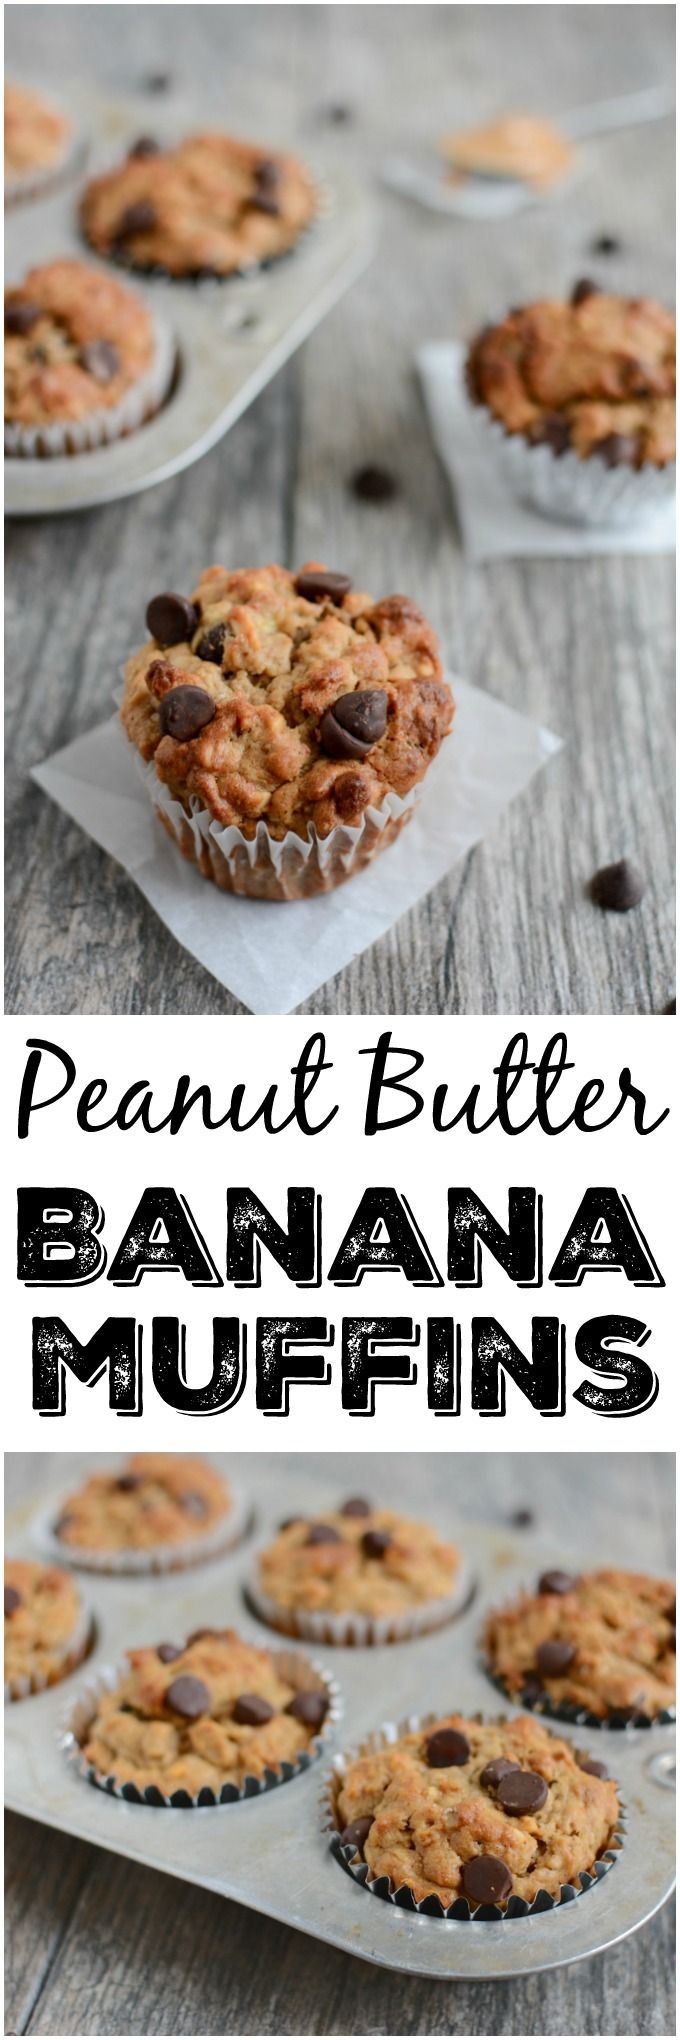 These Peanut Butter Banana Oat Muffins are low in added sugar and high in fiber and flavor, making them the perfect healthy snack on a busy day!